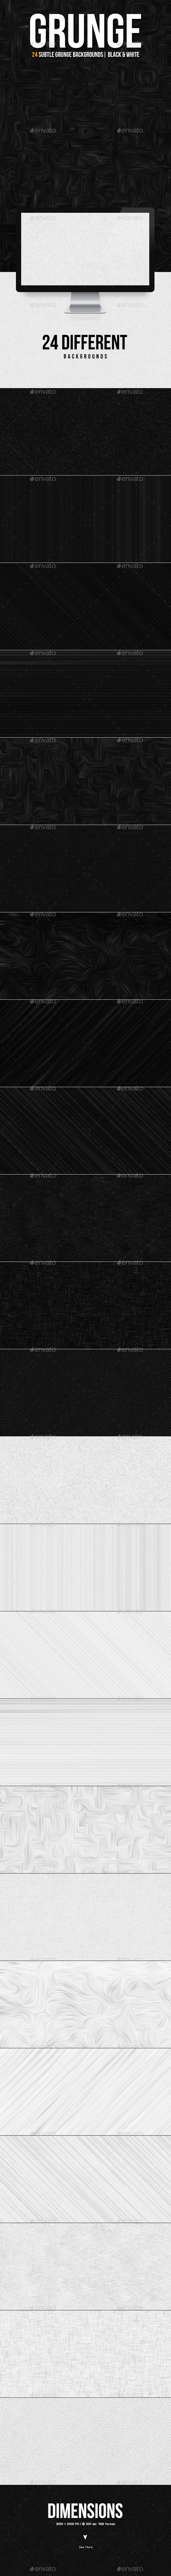 Subtle Texture Backgrounds | Black & White - Patterns Backgrounds